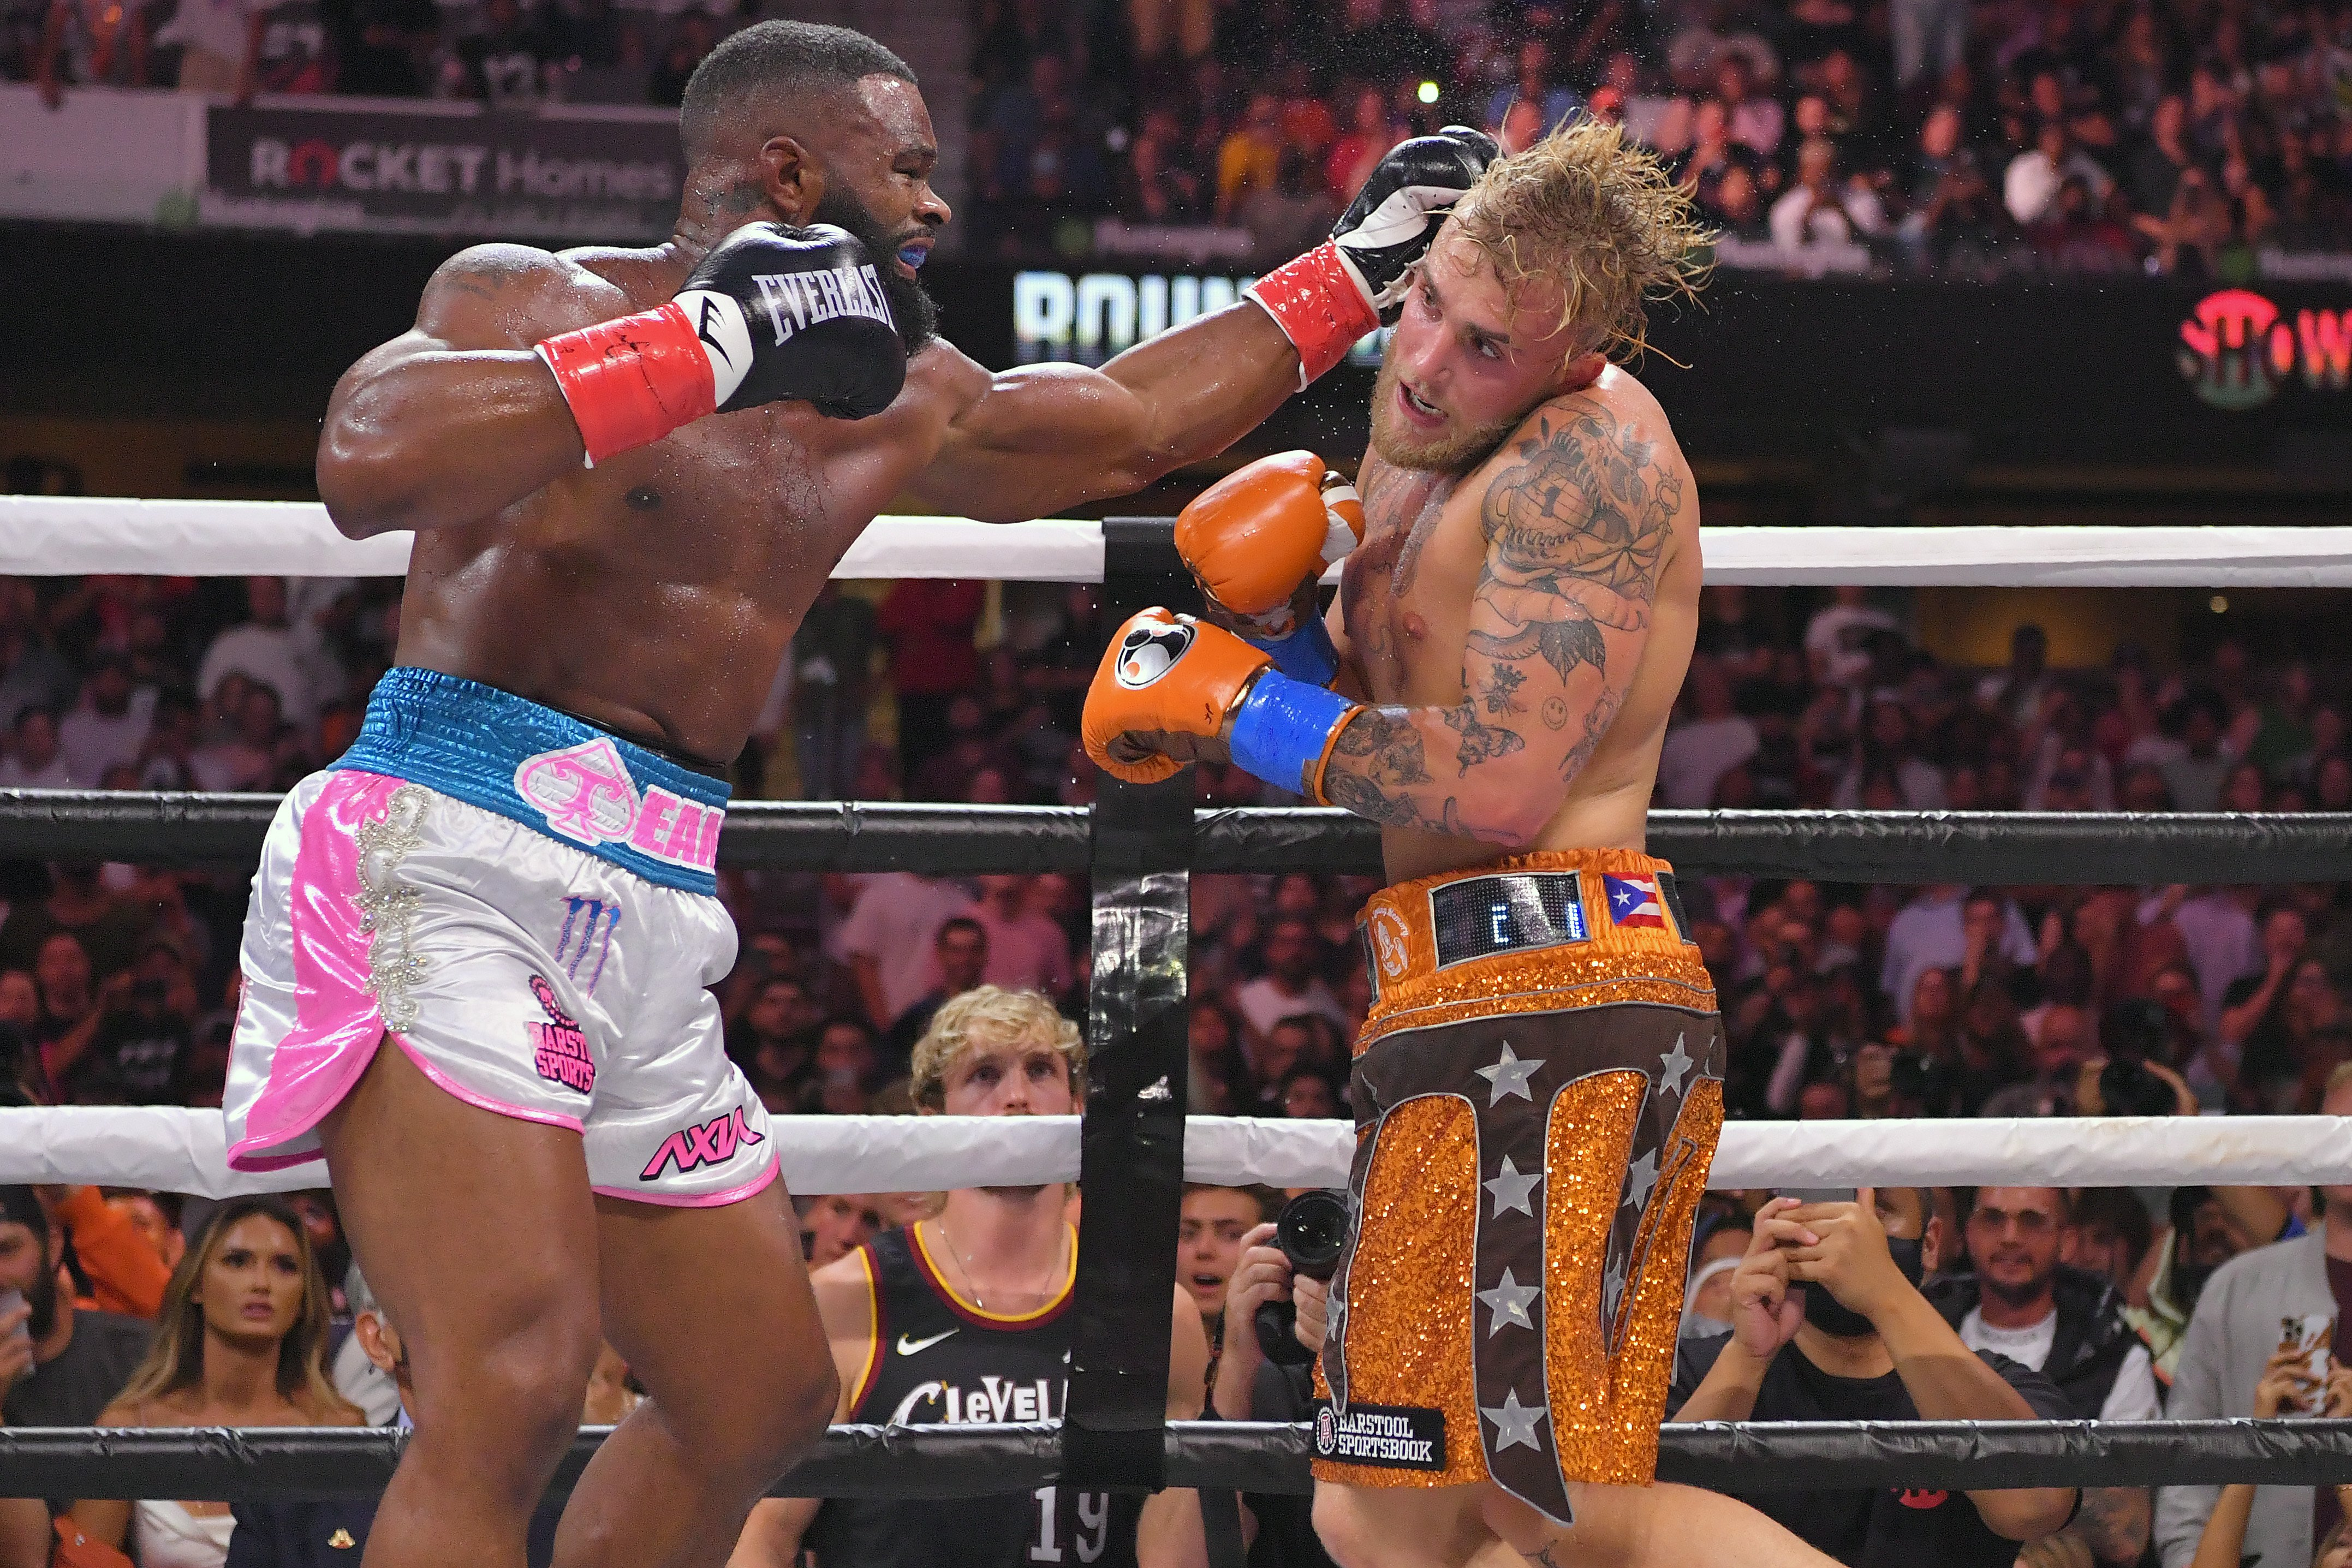 Tyron Woodley and Jake Paul during their cruiserweight bout at Rocket Morgage Fieldhouse in Cleveland, Ohio   Photo: Jason Miller/Getty Images